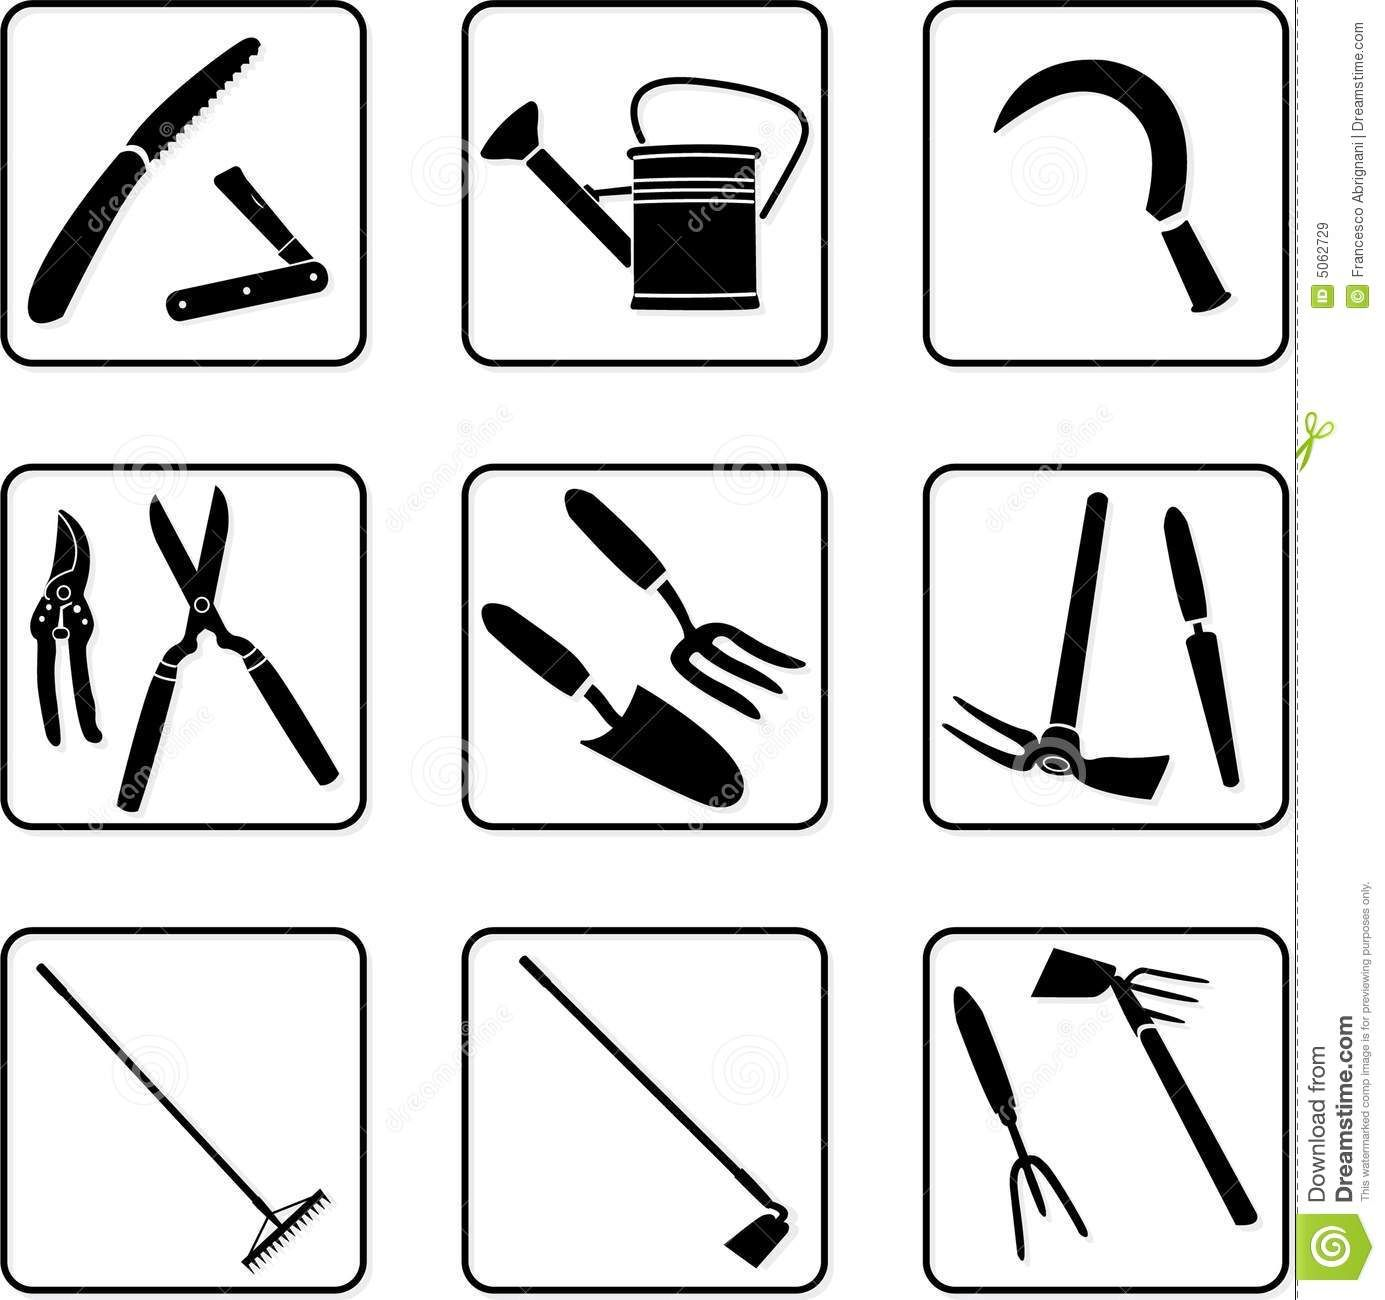 Common Garden Tools Check Out The Image By Visiting The Link